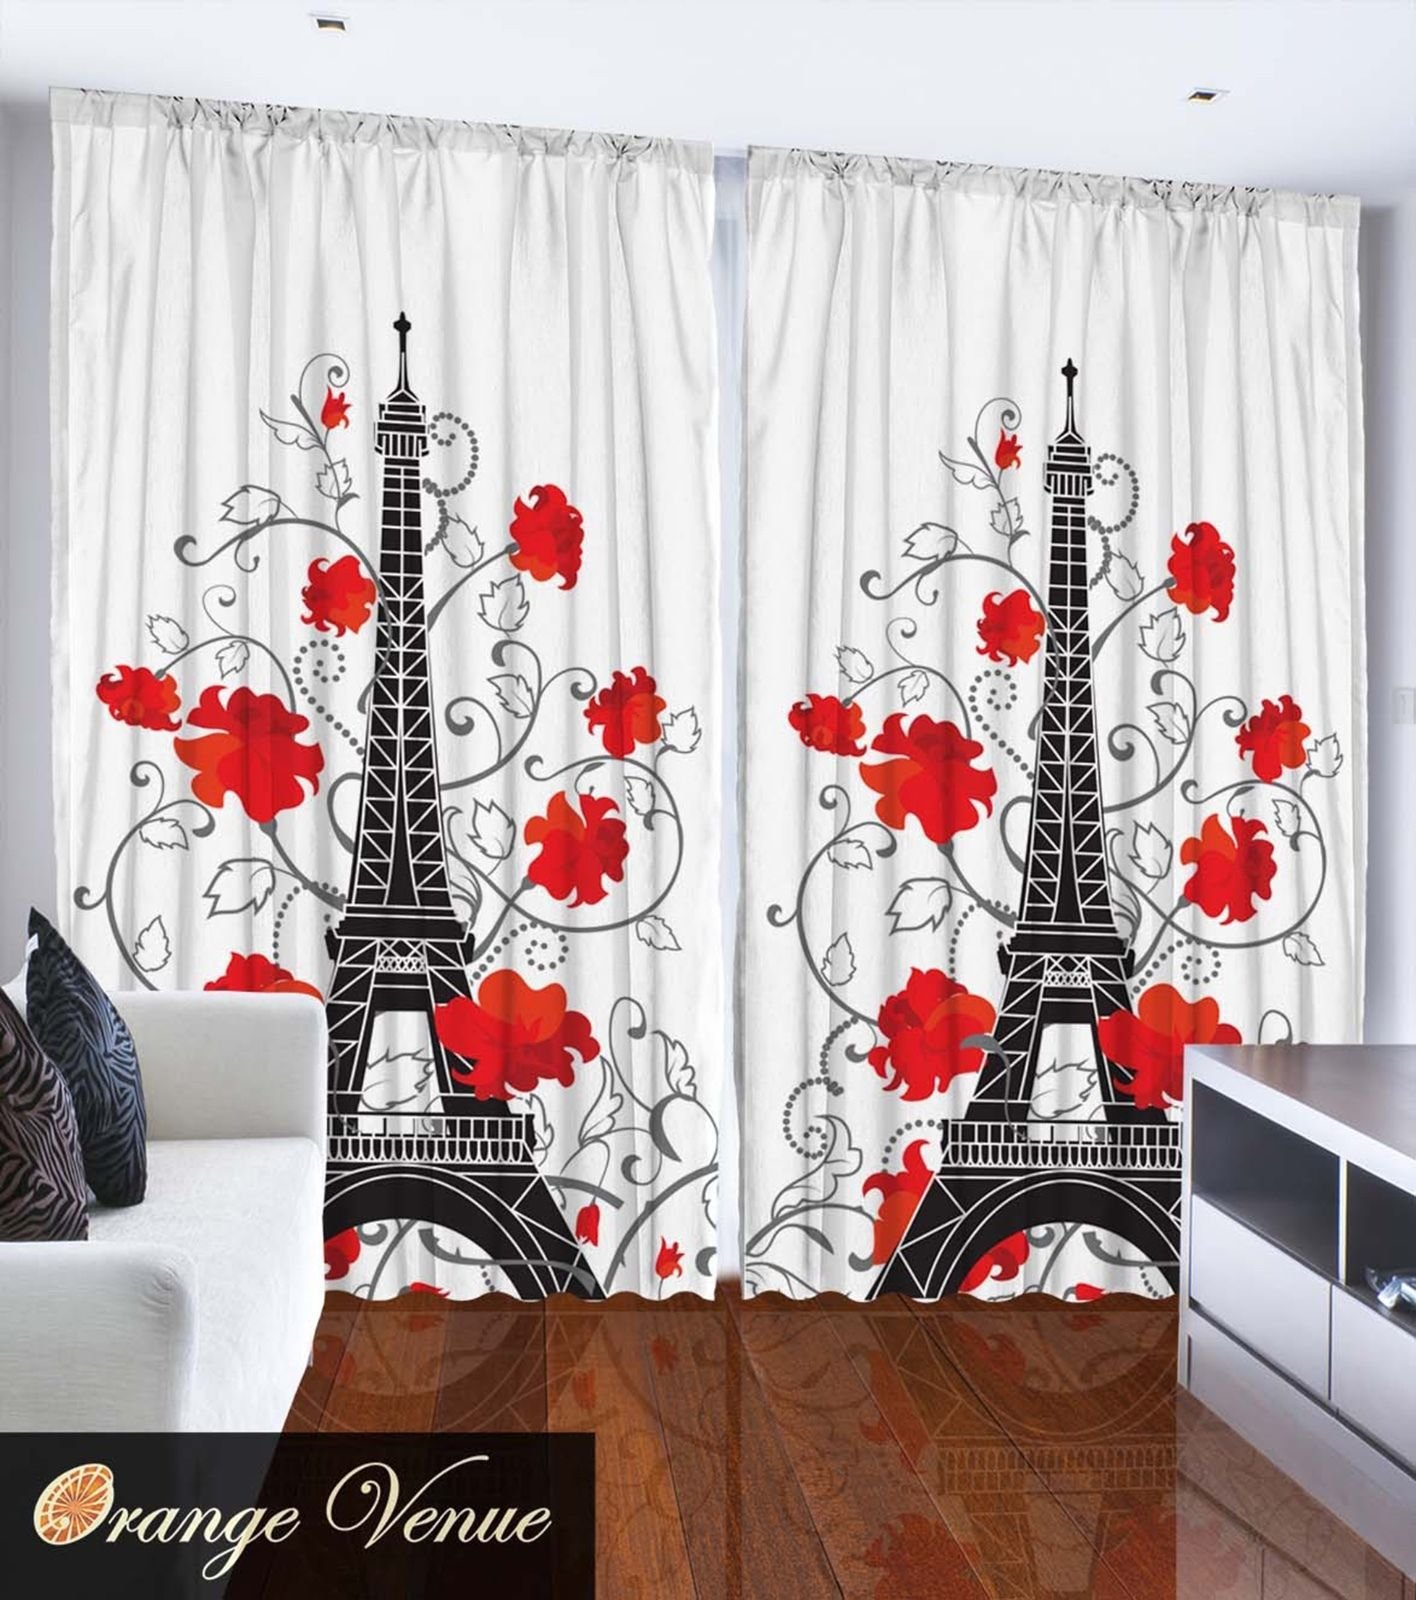 Best Eiffel Tower Paris City Decor Bedroom Accessories French Style Curtain 2 Panels Ebay With Pictures